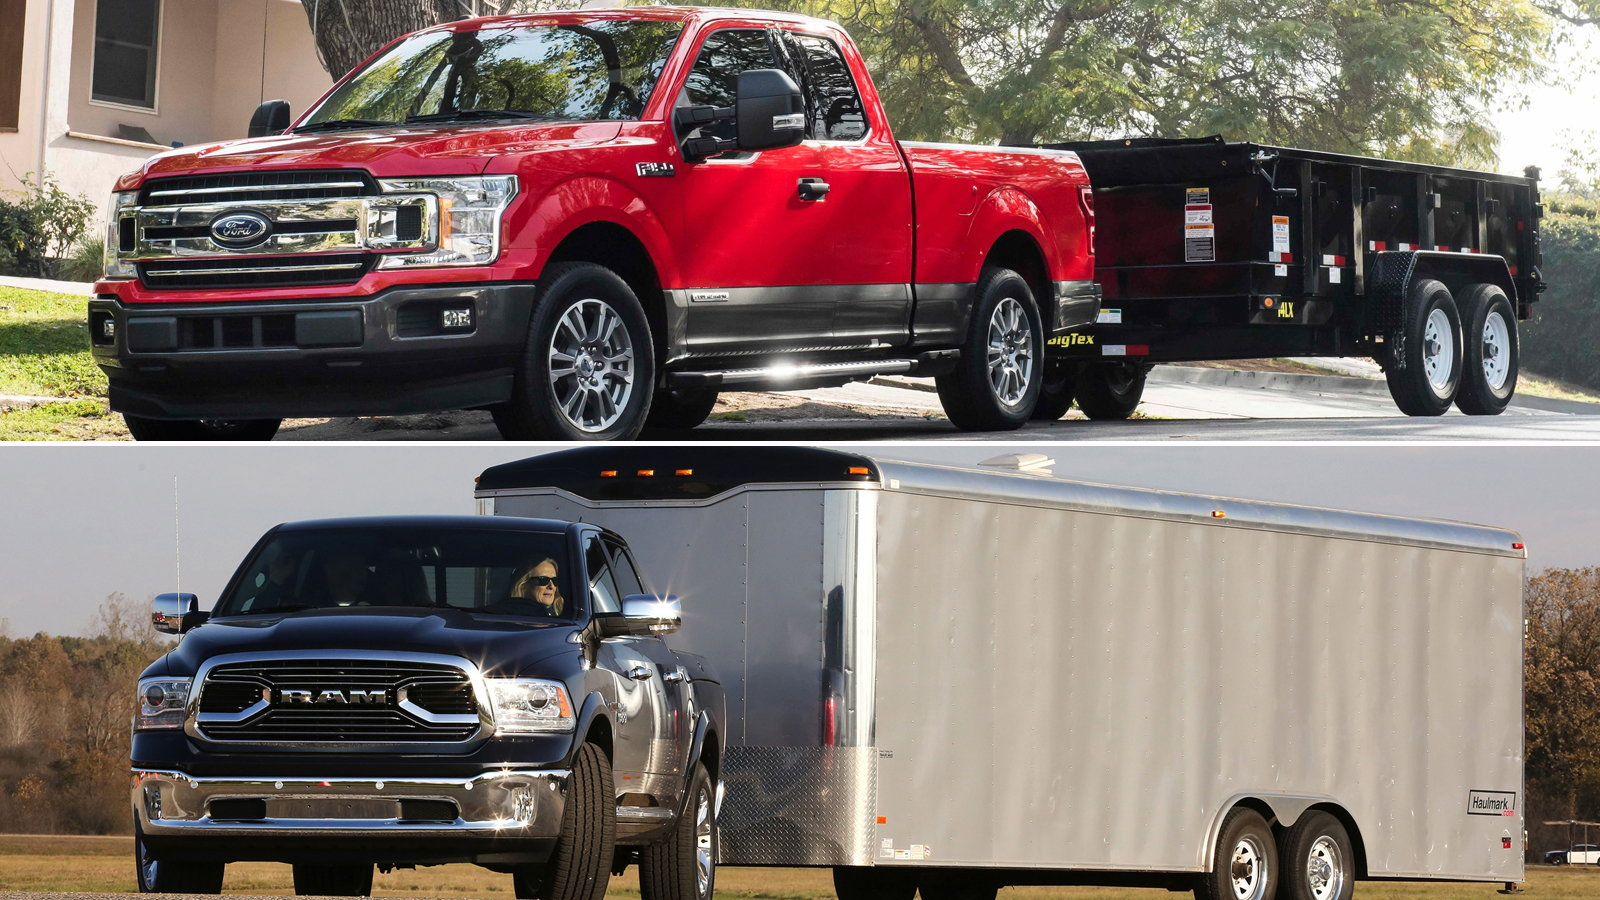 2018 F-150 Powerstroke vs the 2018 Ram 1500 EcoDiesel